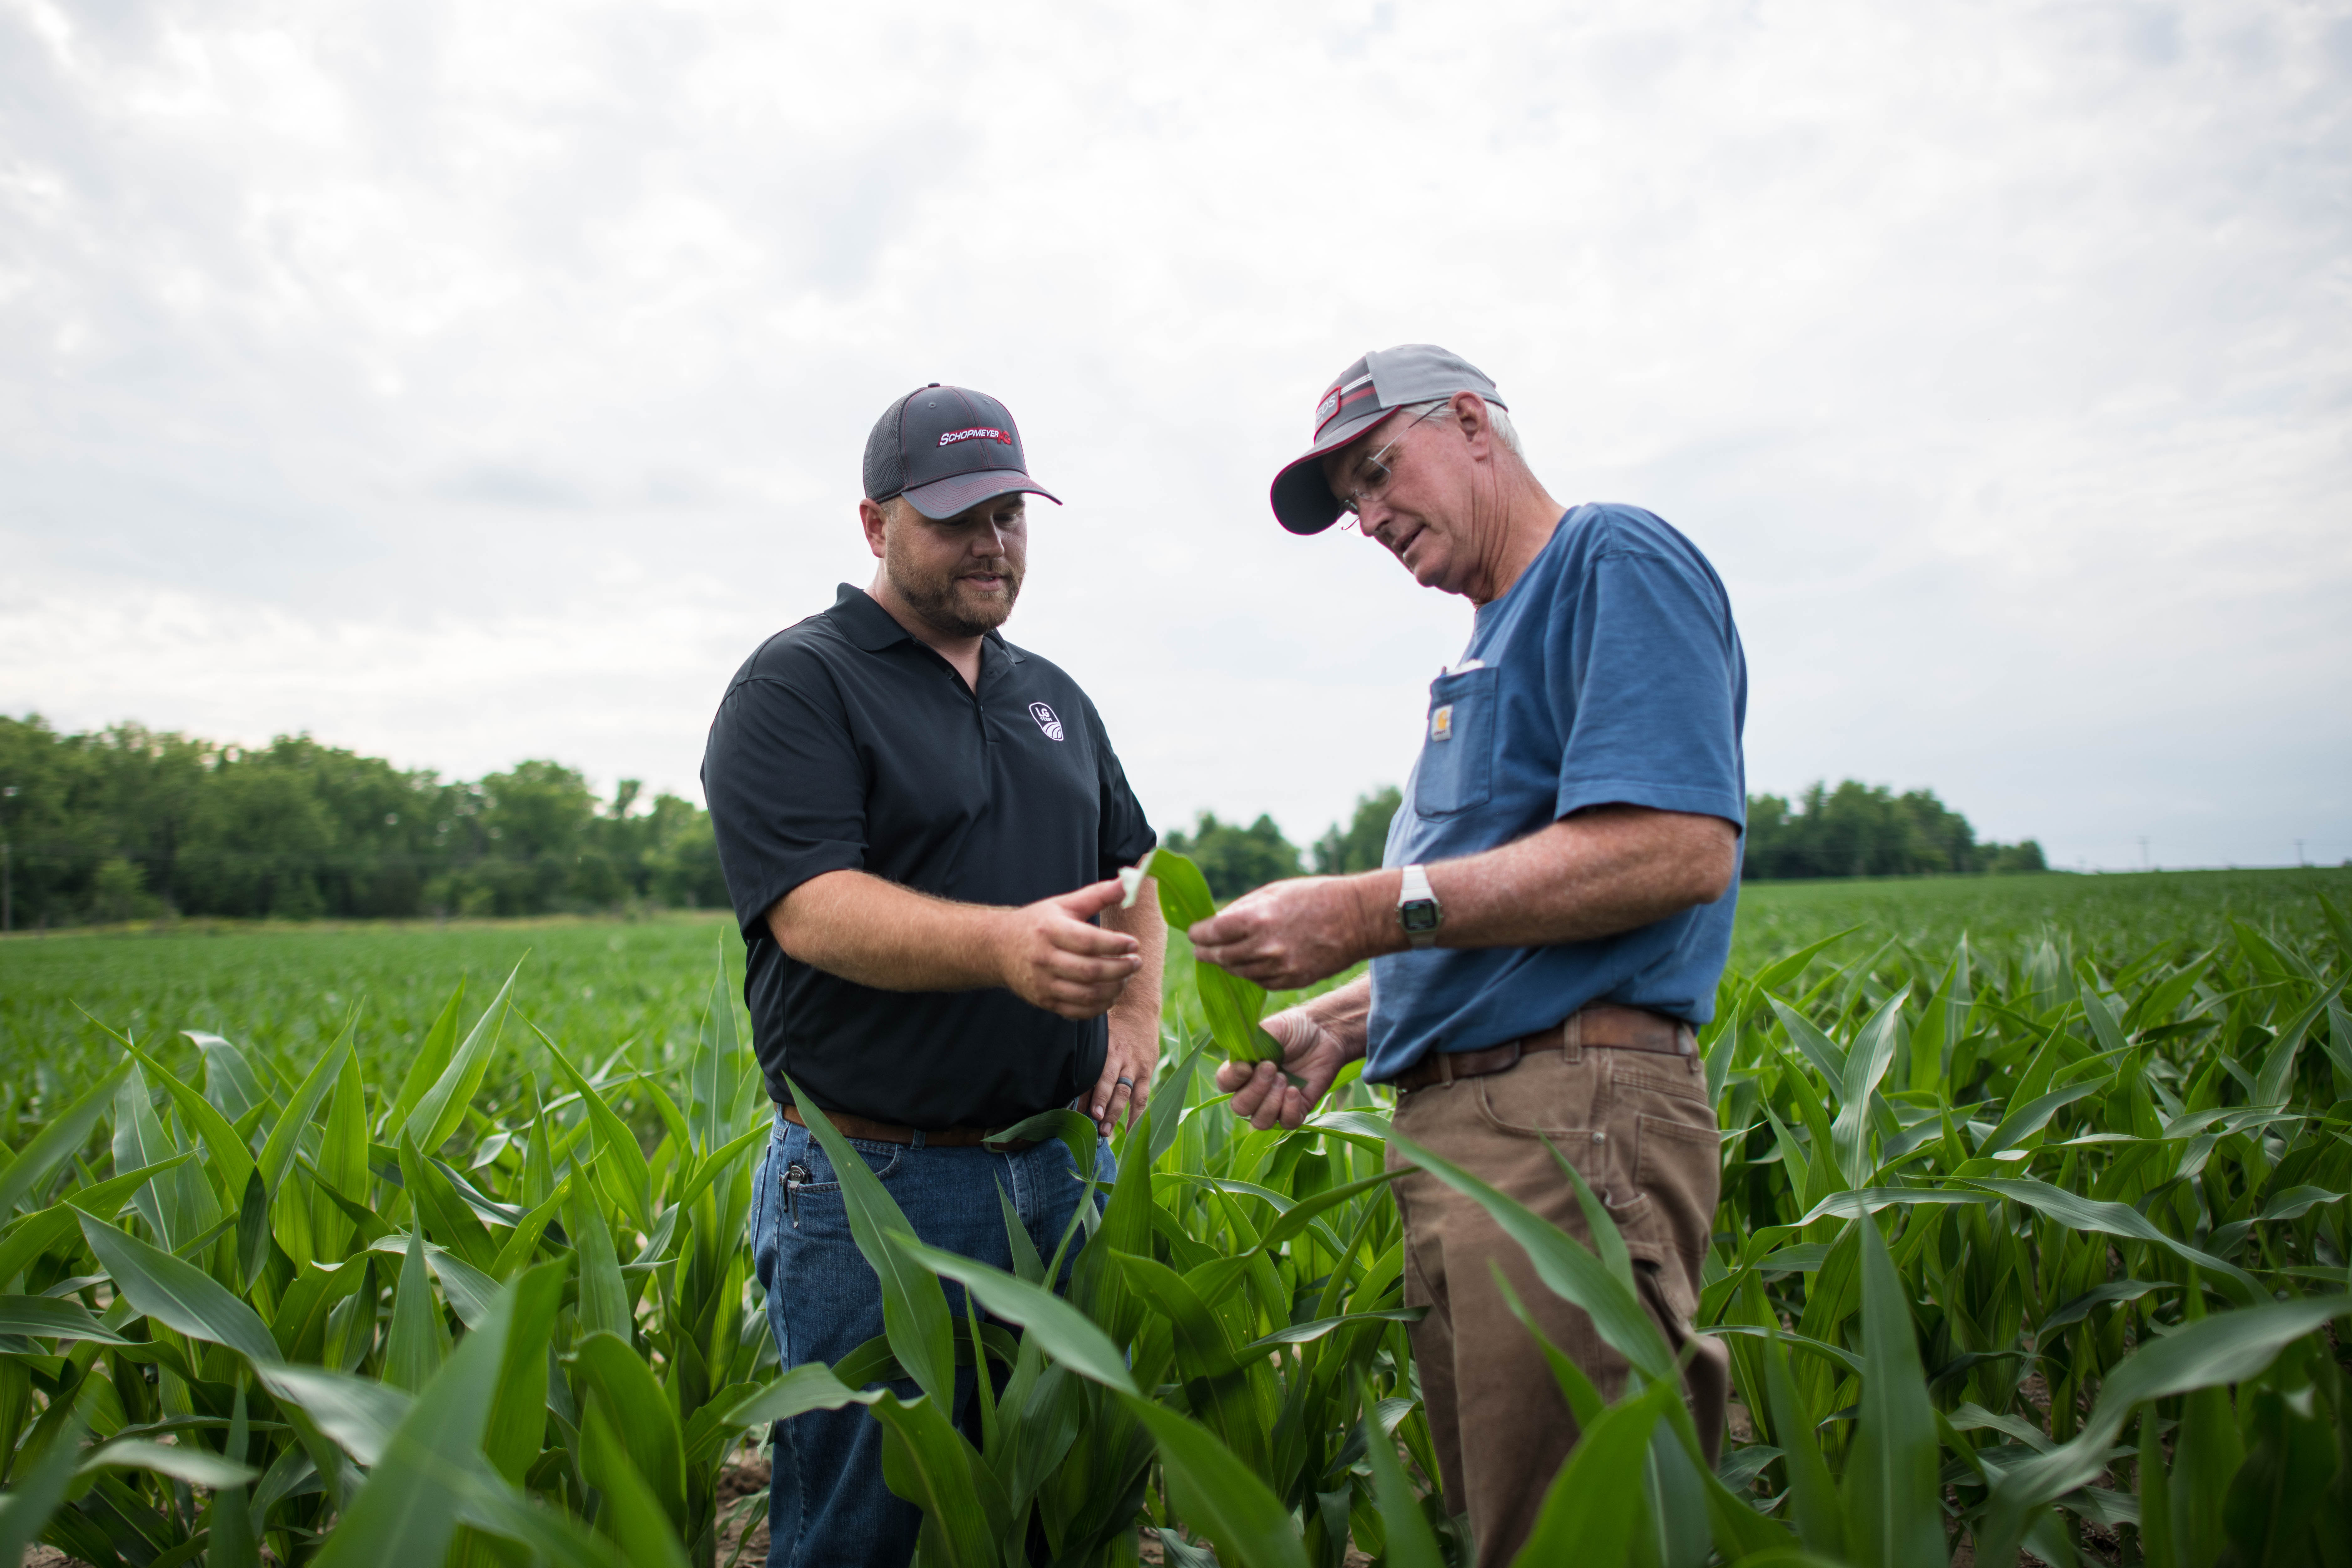 Agronomist and customer looking at corn in a field